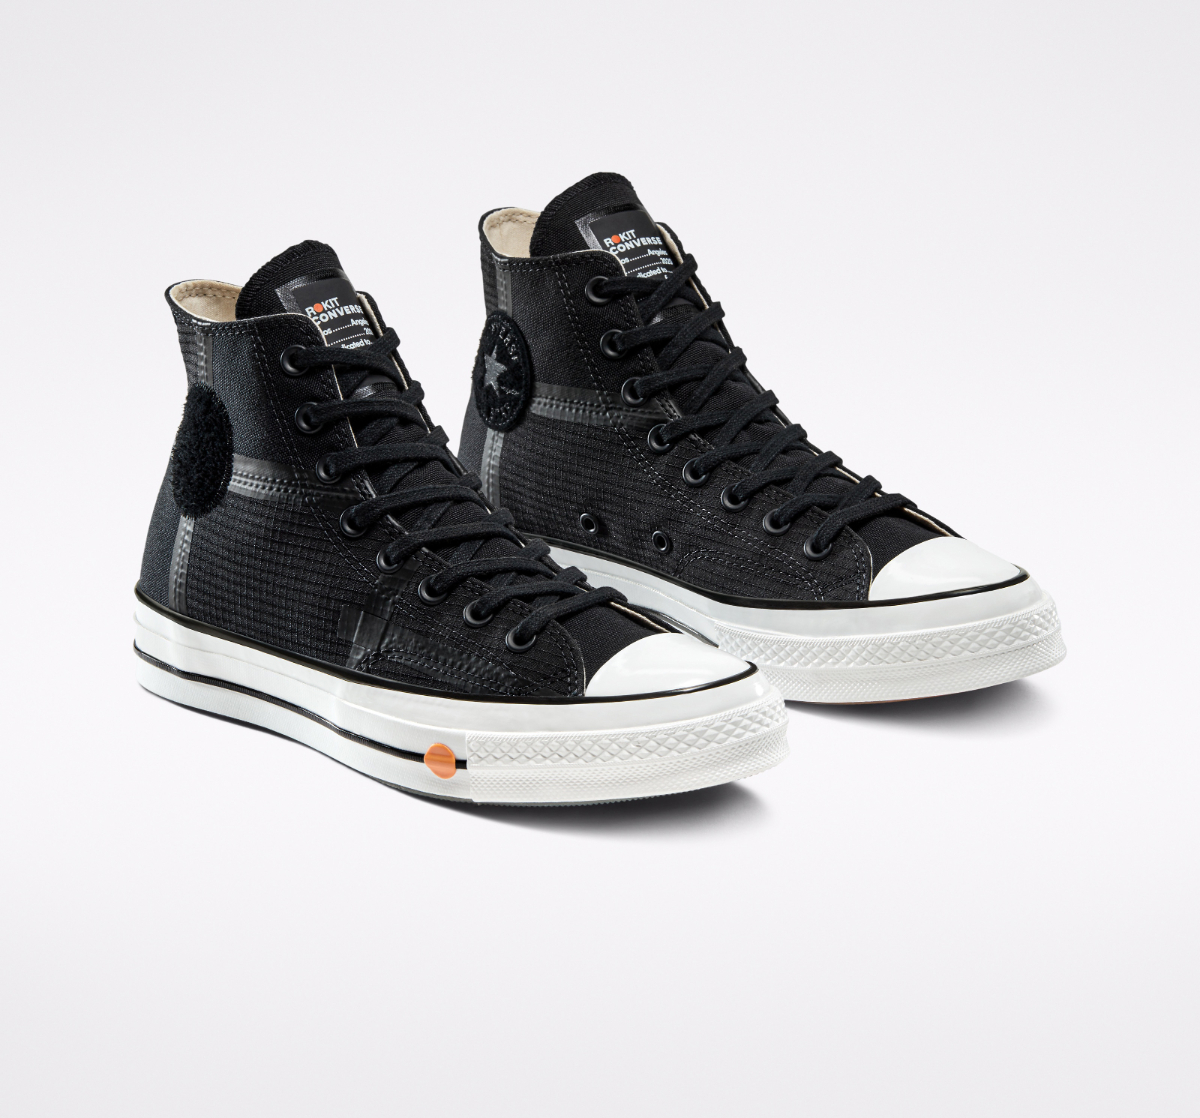 Converse and ROKIT reconnect for All Star Sneaker